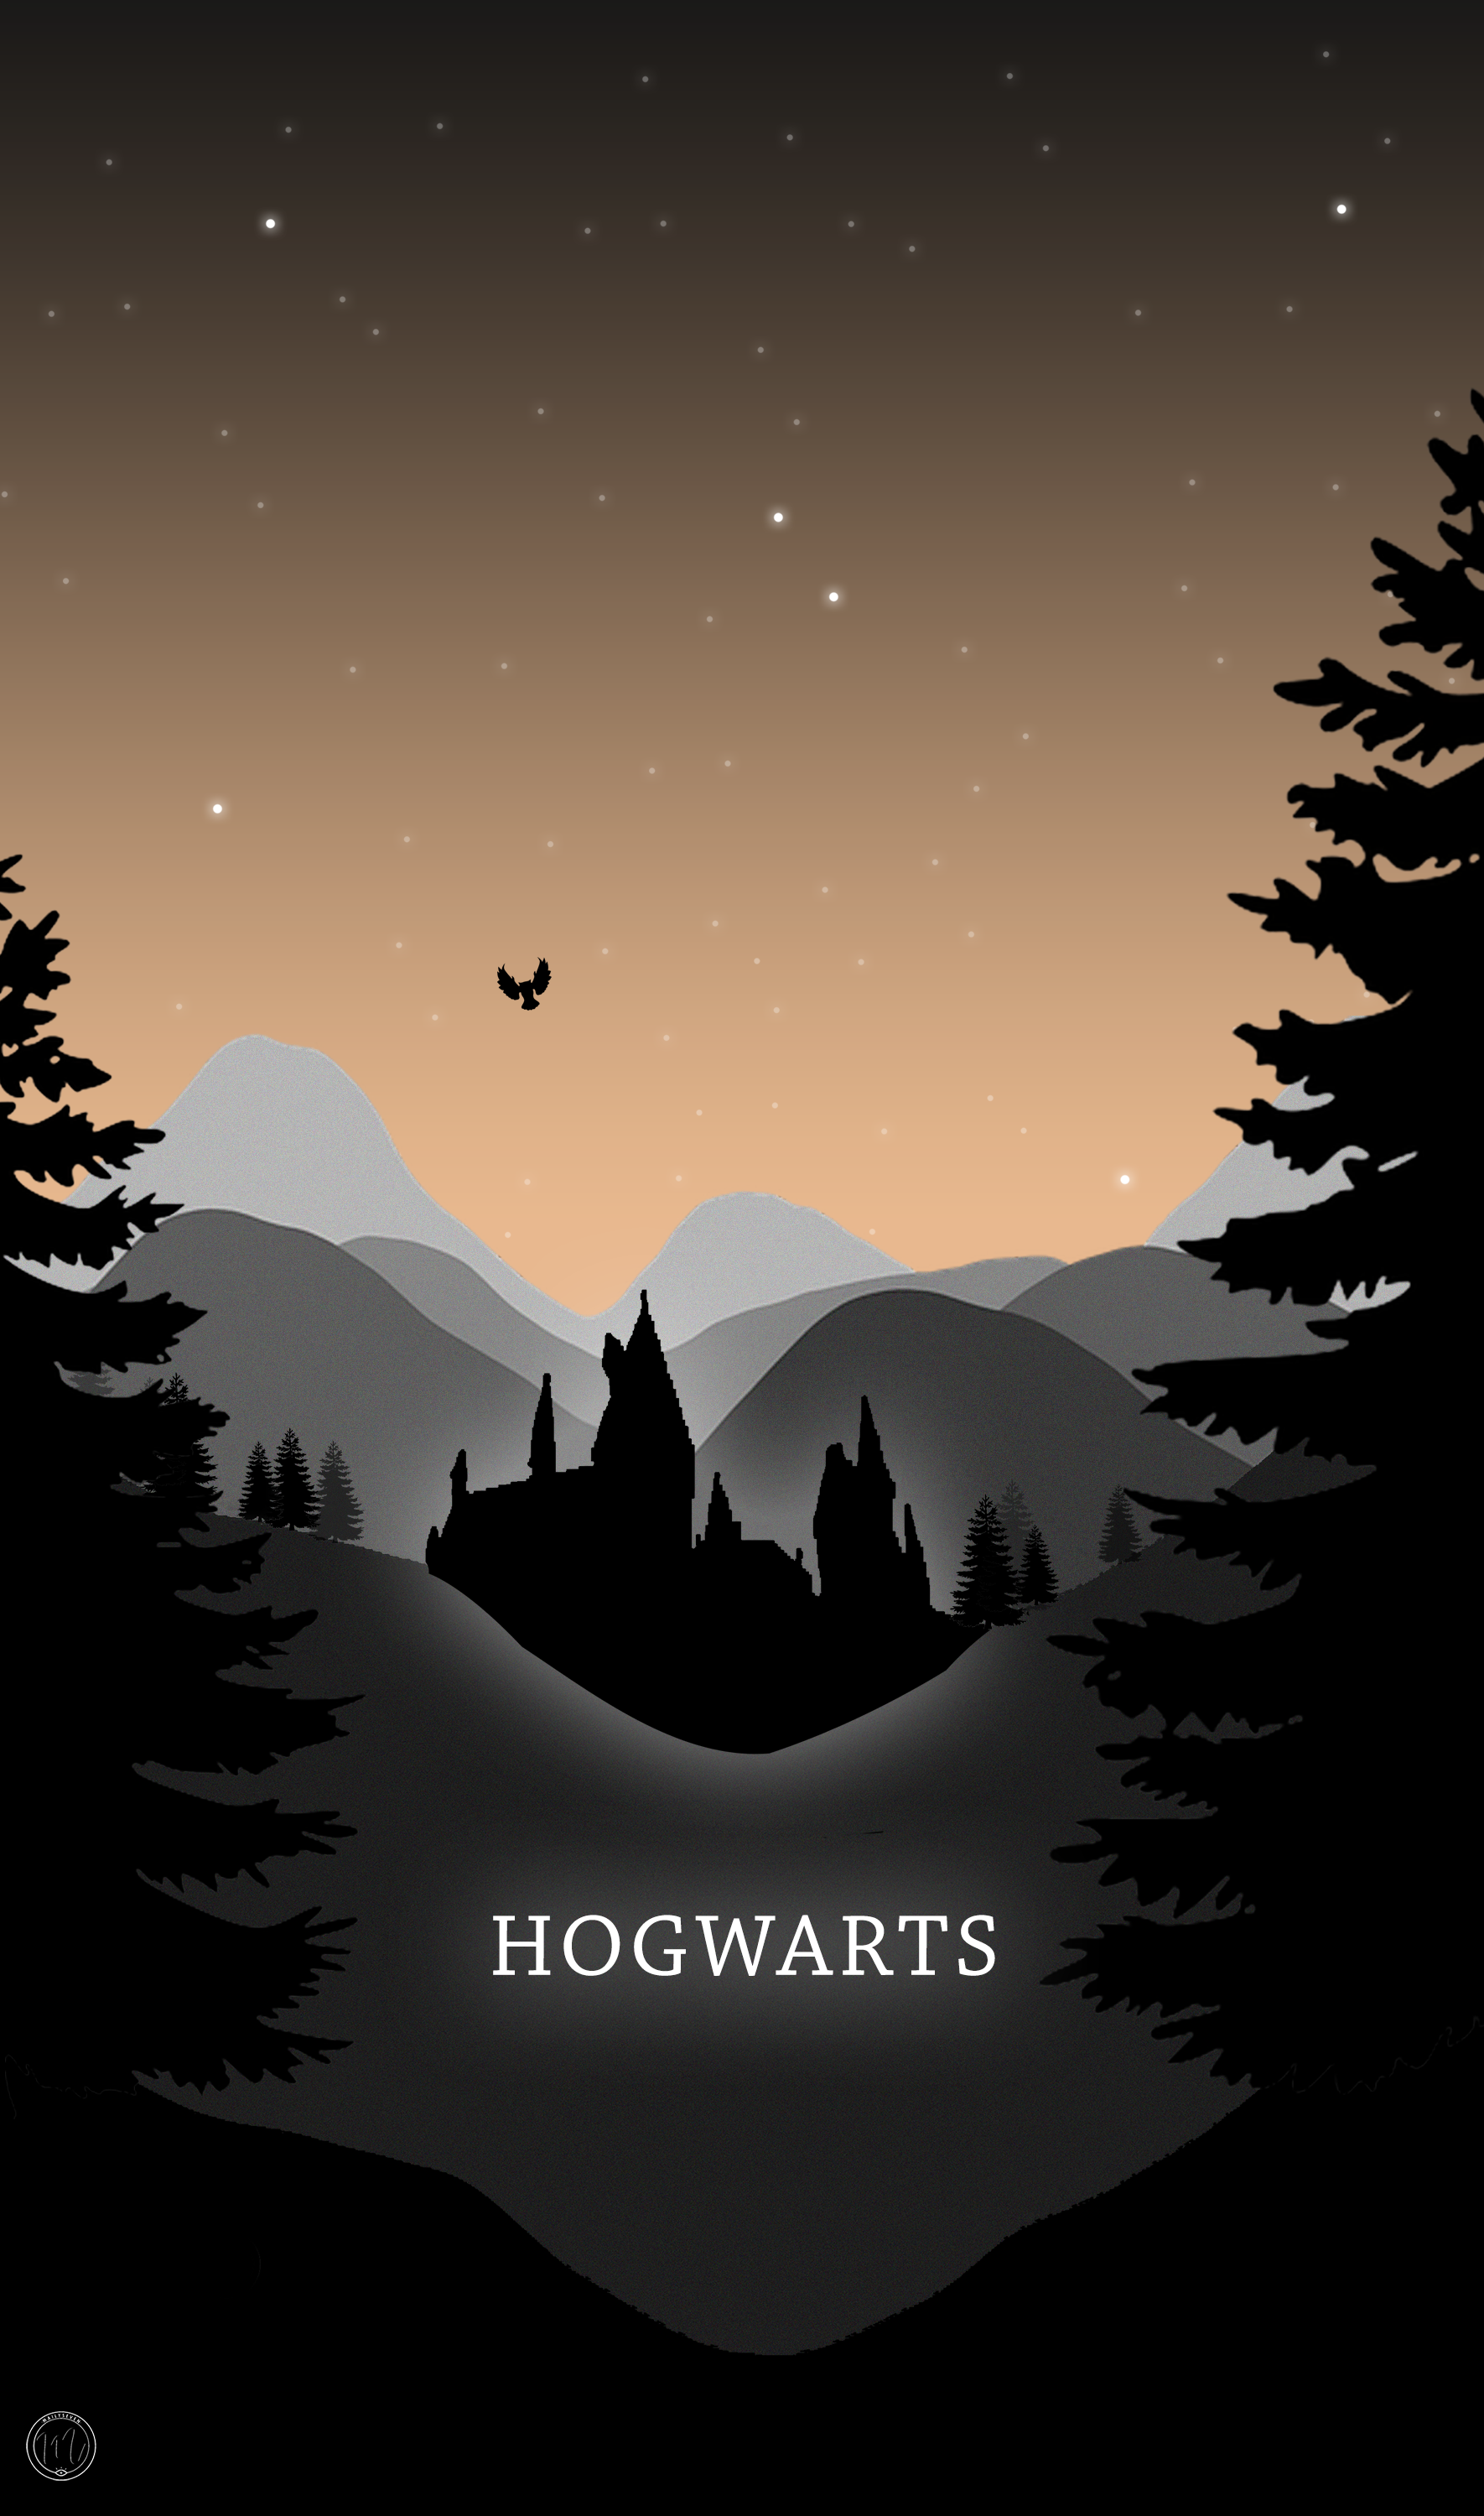 Hogwarts Phone Wallpaper Harry Potter Inspired Il Ration Mailyseven July 2018